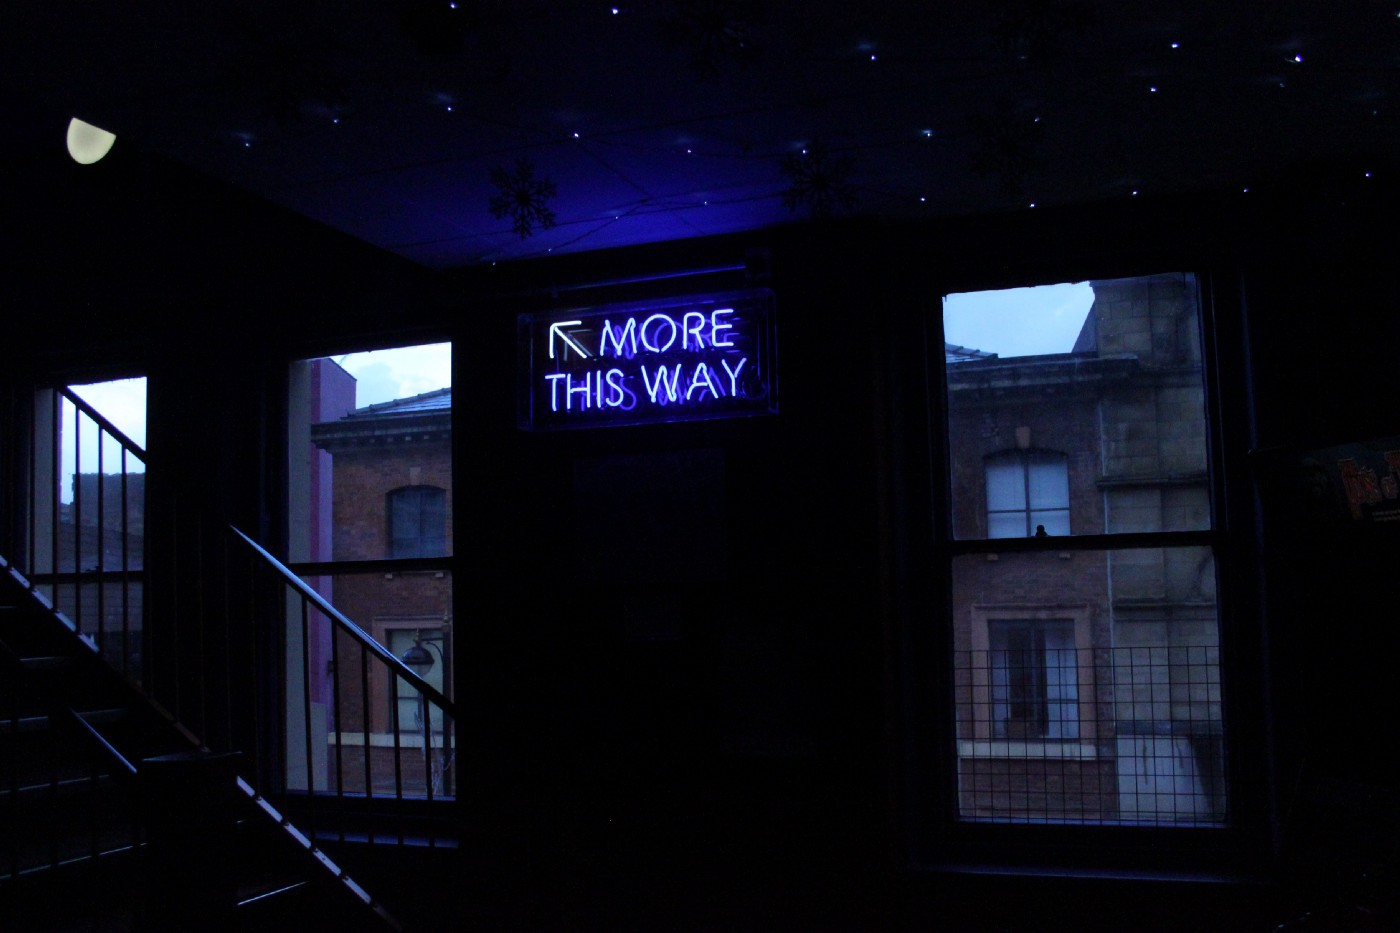 """staircase with a neon sign next to it that says """"More this way"""""""